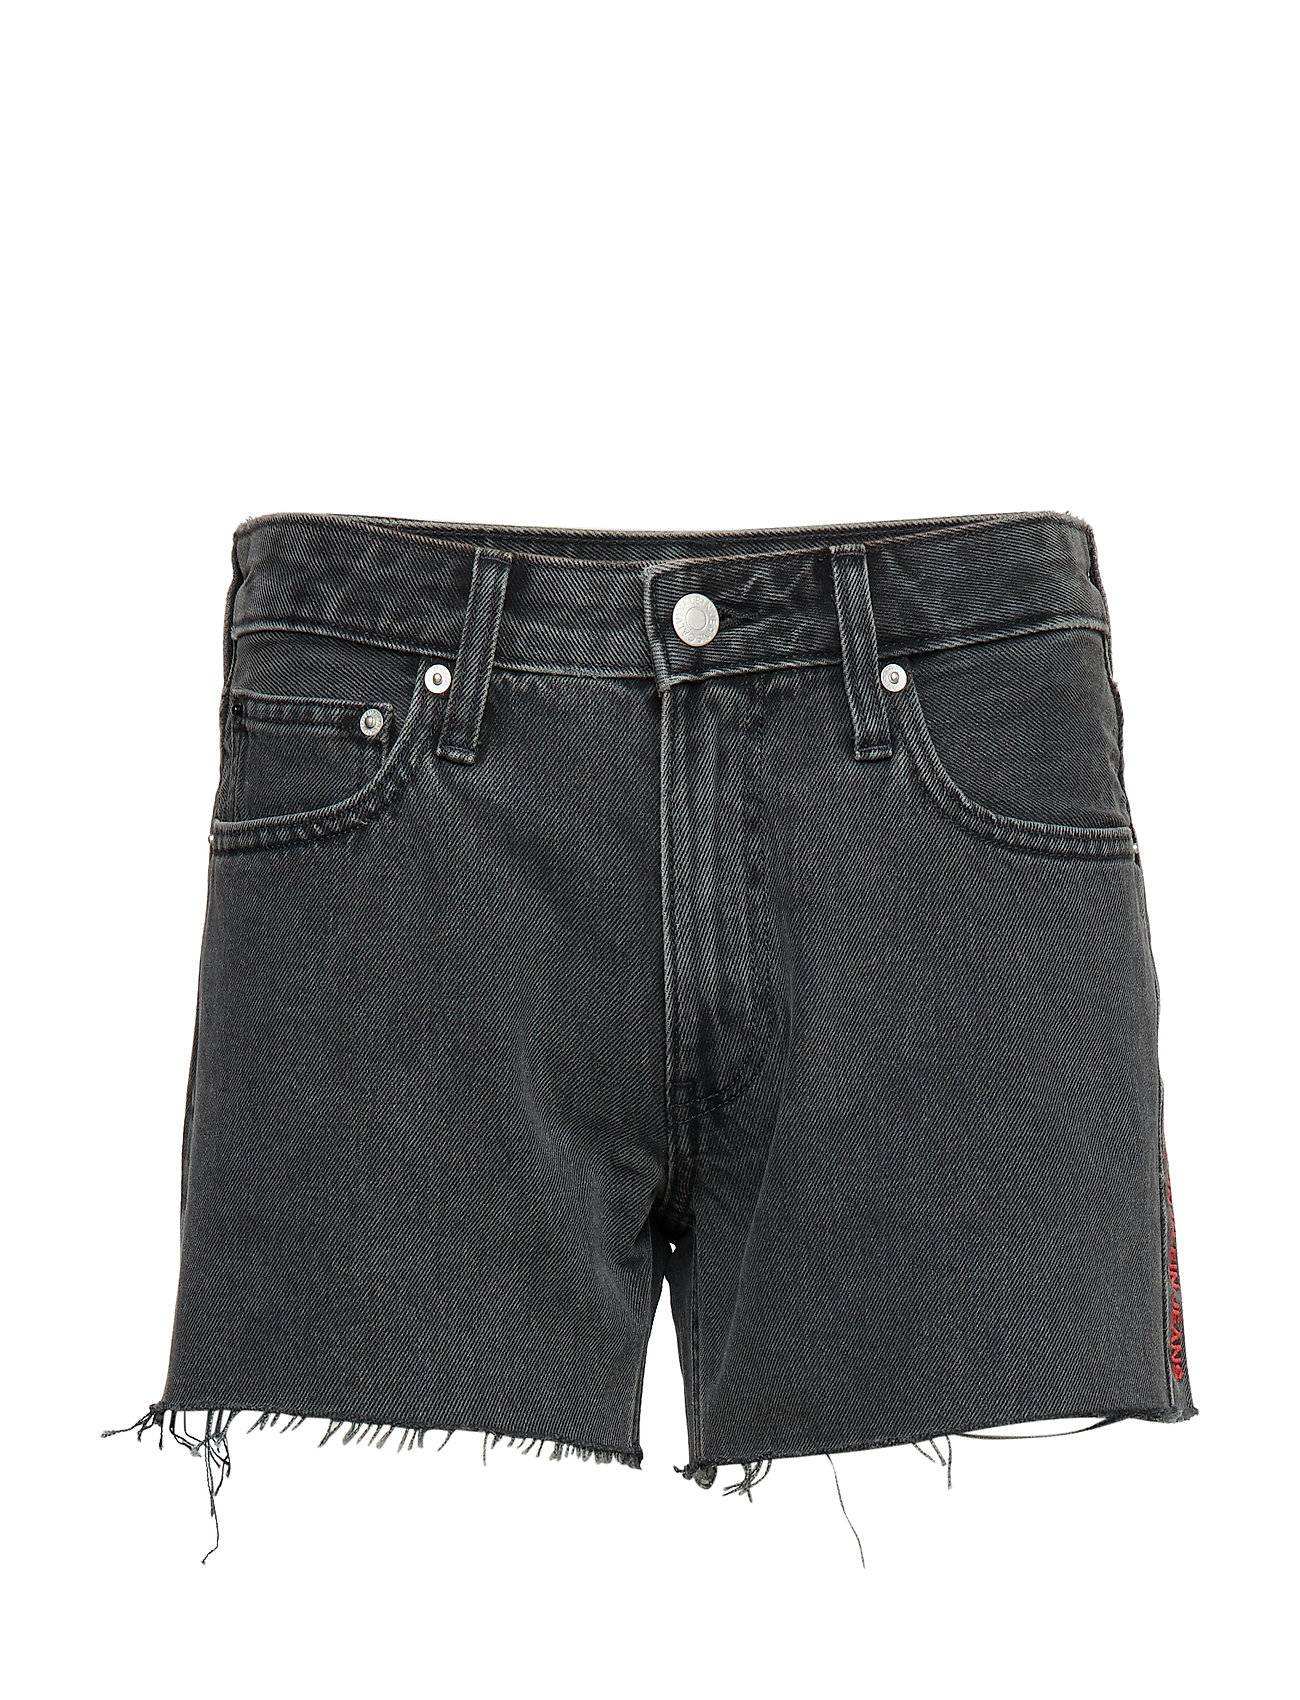 Image of Calvin Mid Rise Weekend Short Shorts Denim Shorts Harmaa Calvin Klein Jeans